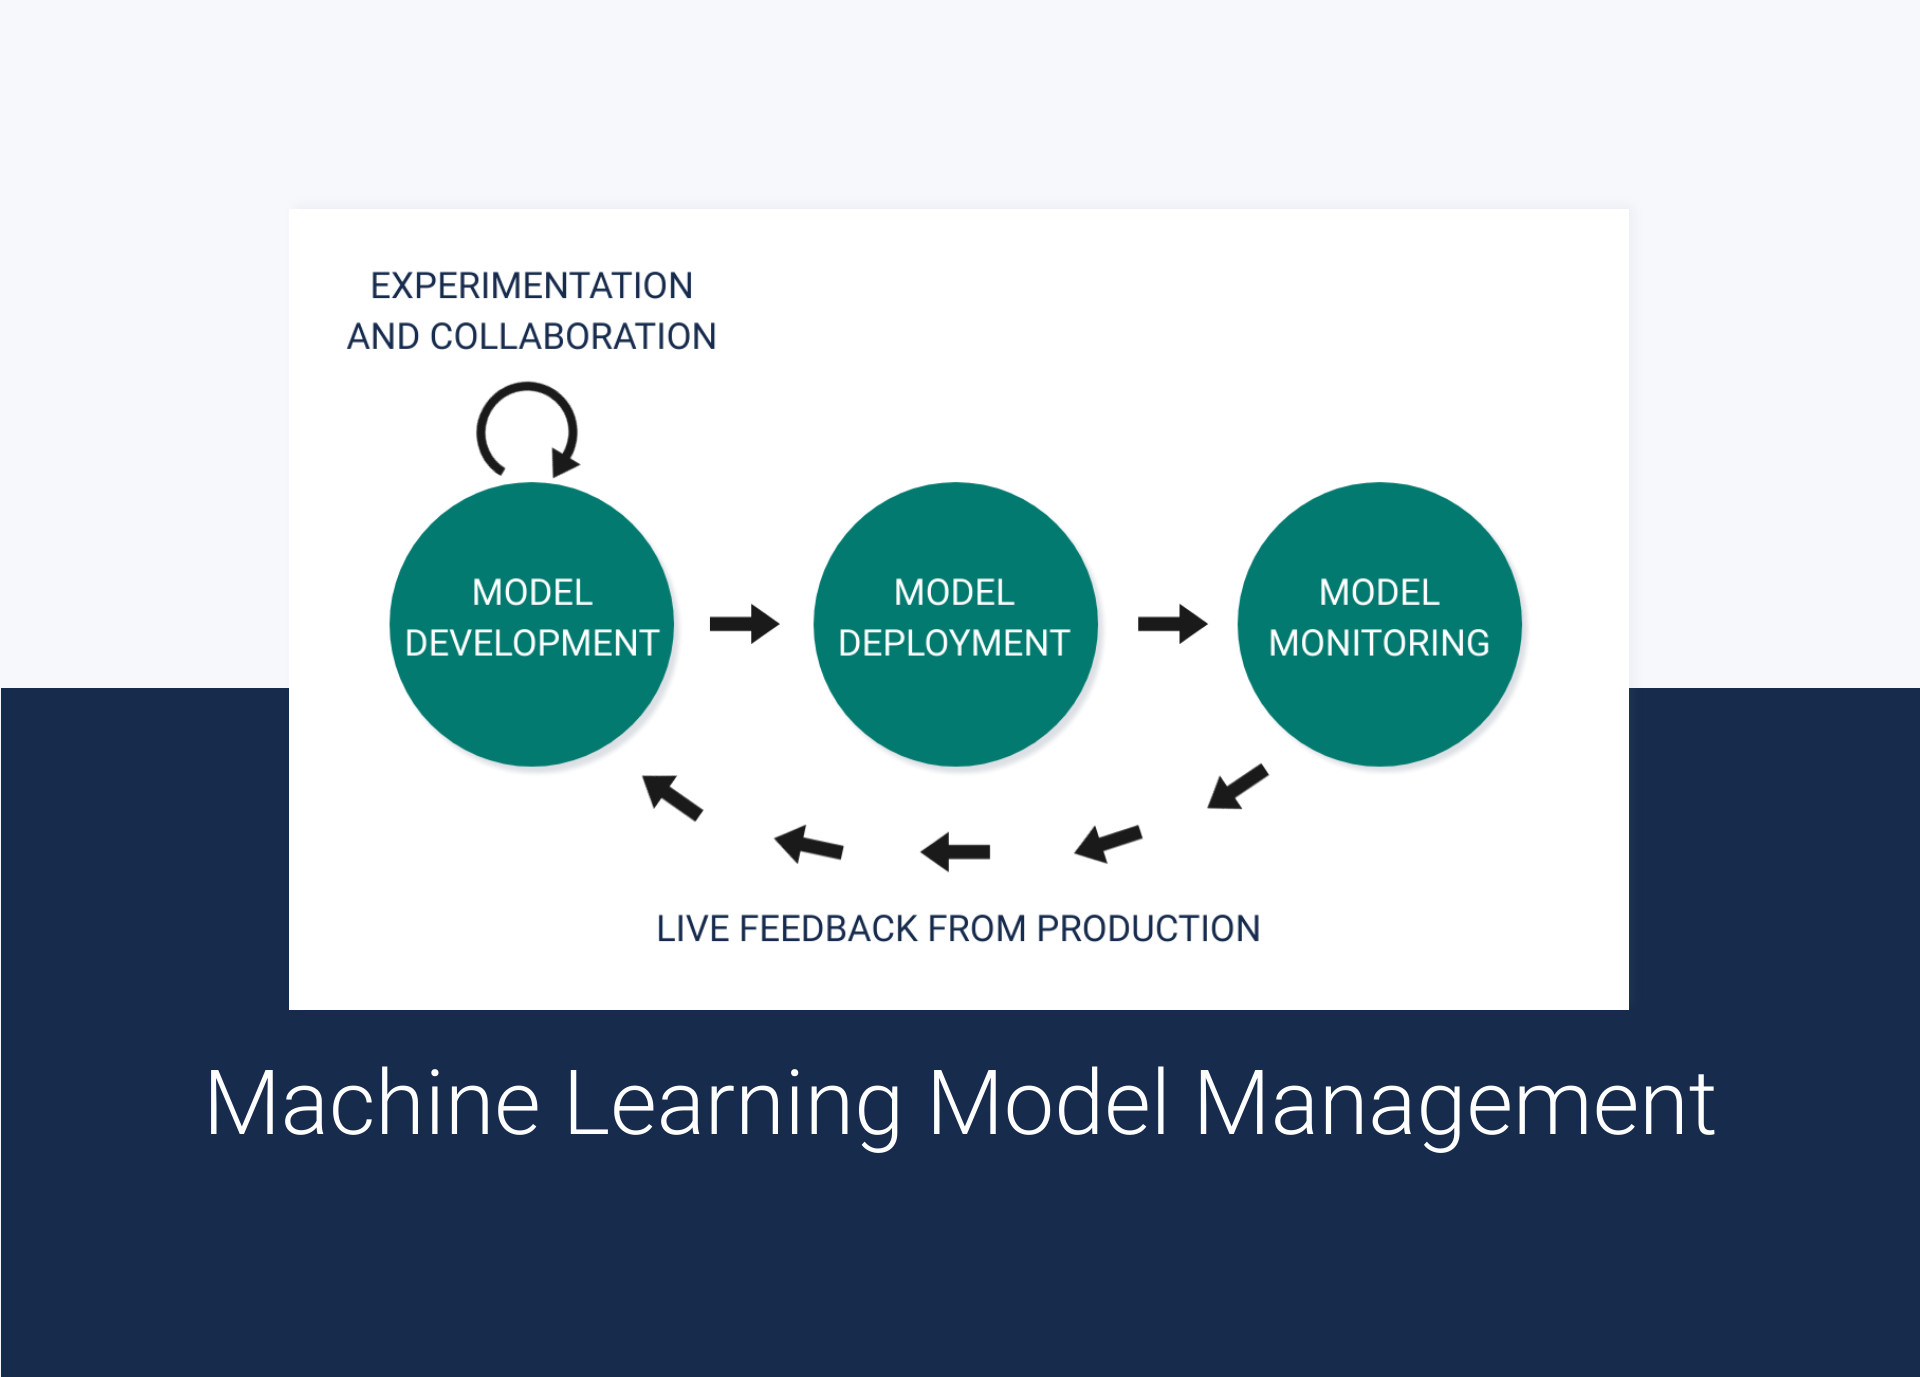 Machine Learning Model Management in 2020 and Beyond – Everything That You Need to Know